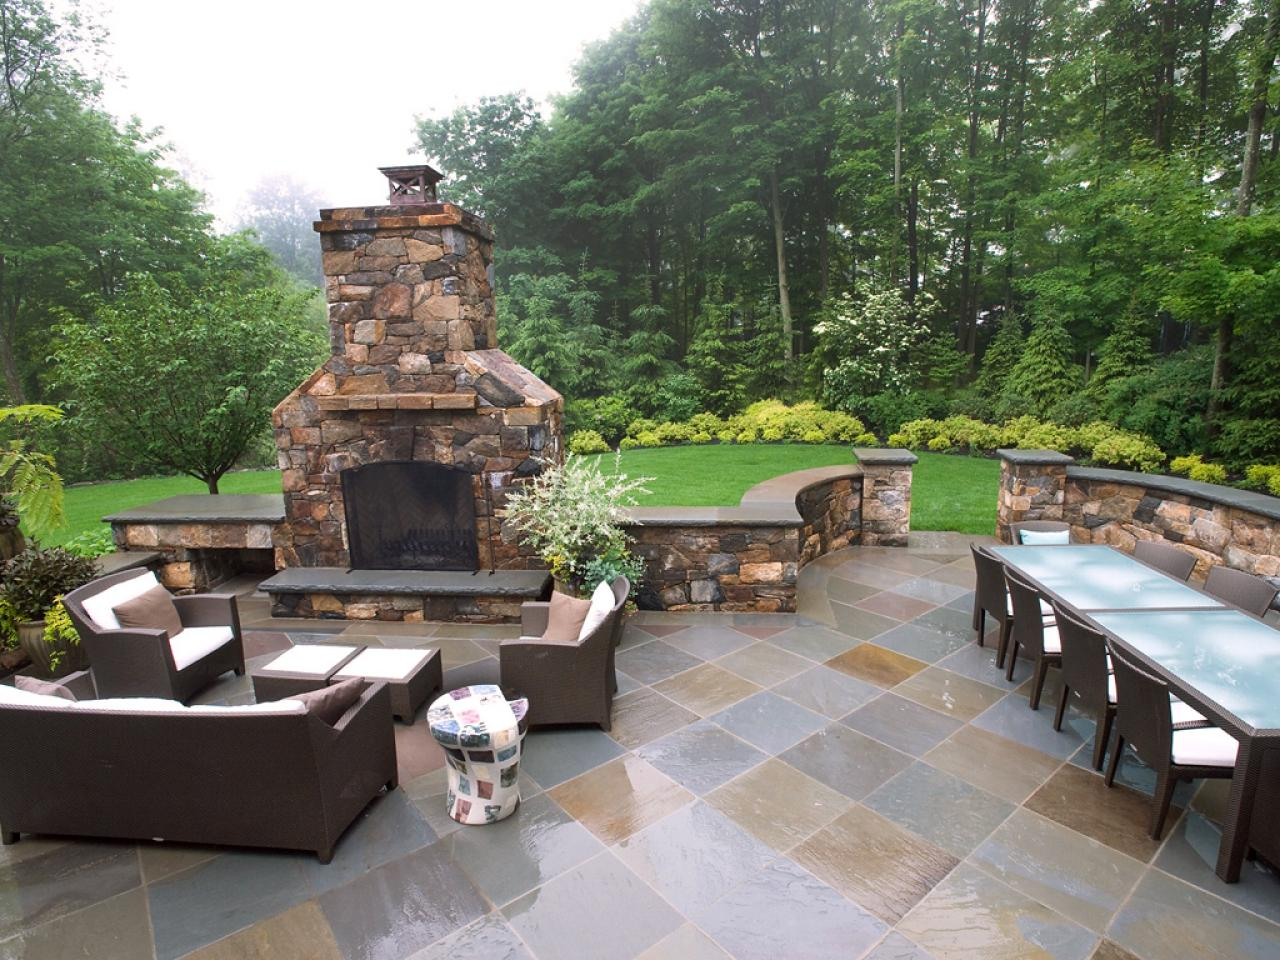 Patio Design & Installation-Nacodoches TX Professional Landscapers & Outdoor Living Designs-We offer Landscape Design, Outdoor Patios & Pergolas, Outdoor Living Spaces, Stonescapes, Residential & Commercial Landscaping, Irrigation Installation & Repairs, Drainage Systems, Landscape Lighting, Outdoor Living Spaces, Tree Service, Lawn Service, and more.